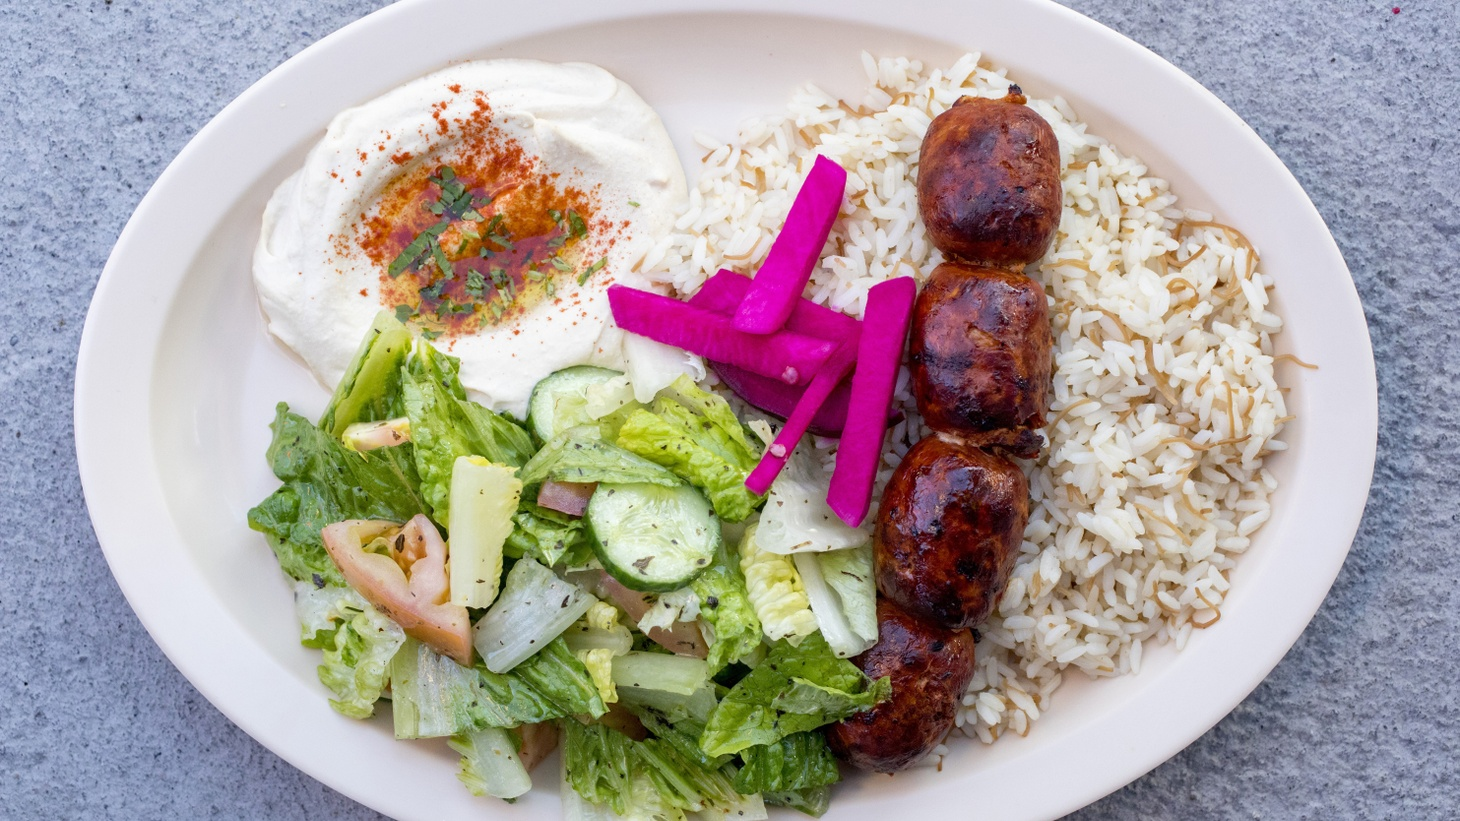 Los Angeles Times restaurant critic Patricia Escárcega reviews X'tiosu Kitchen in Boyle Heights. Pictured: chorizo kebab served with rice, Lebanese salad, and hummus.